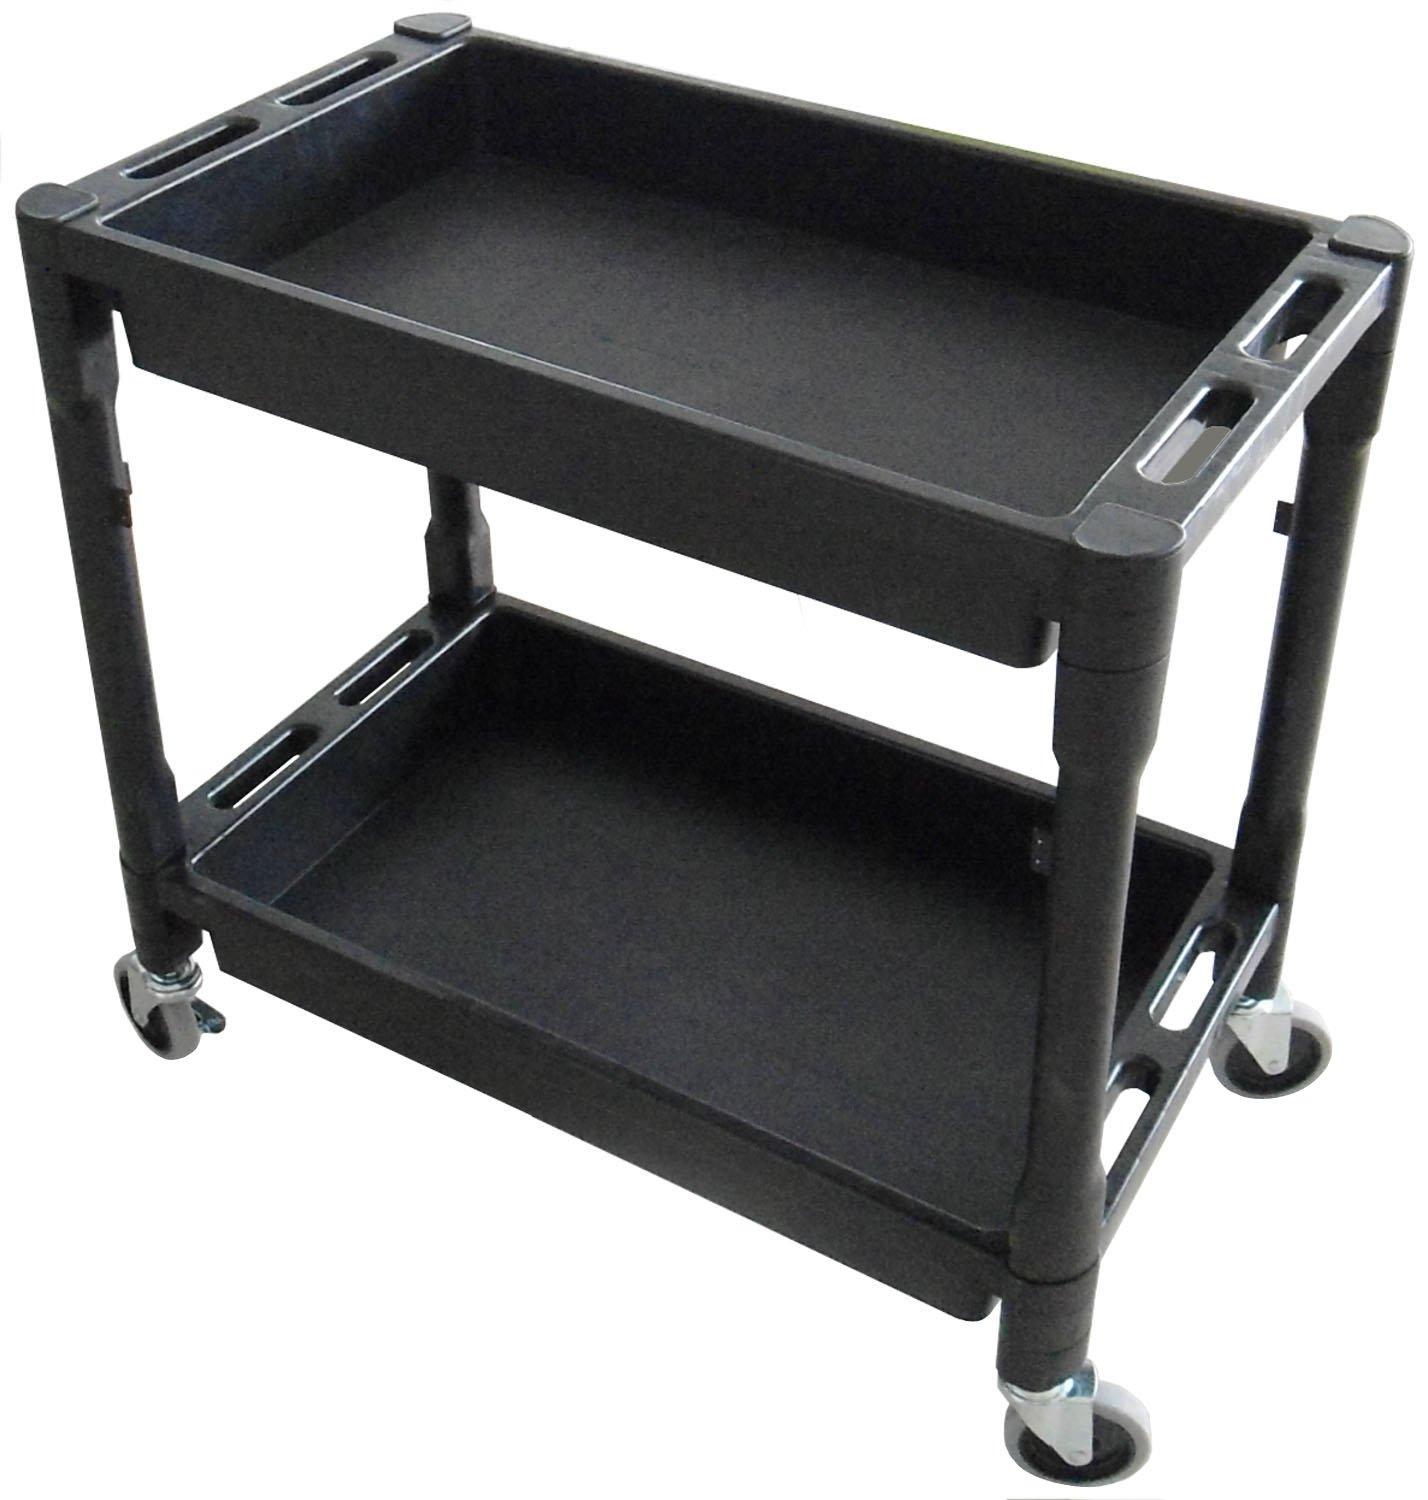 Utility Cart - 32'' x 18'' x 31'' Rolling Tool Cart With Wheels for Office or Storage - 2 Shelf Black